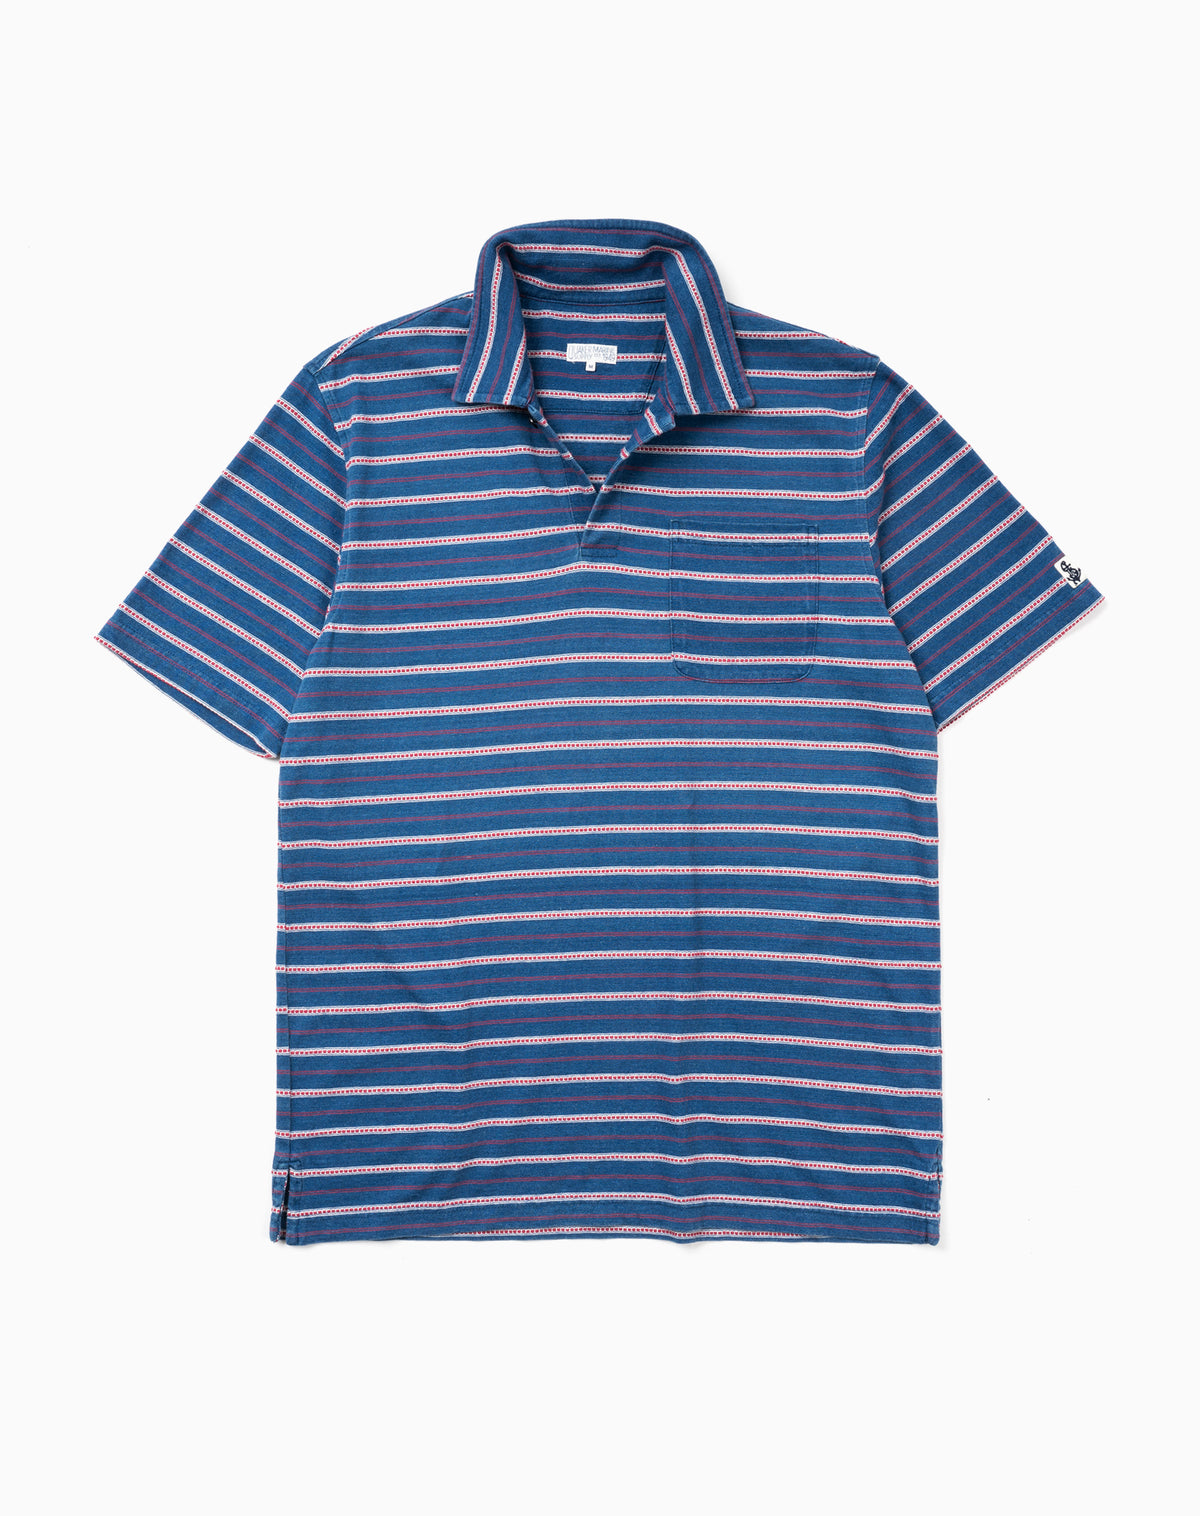 Indigo Polo in Red/Navy Jacquard Stripe